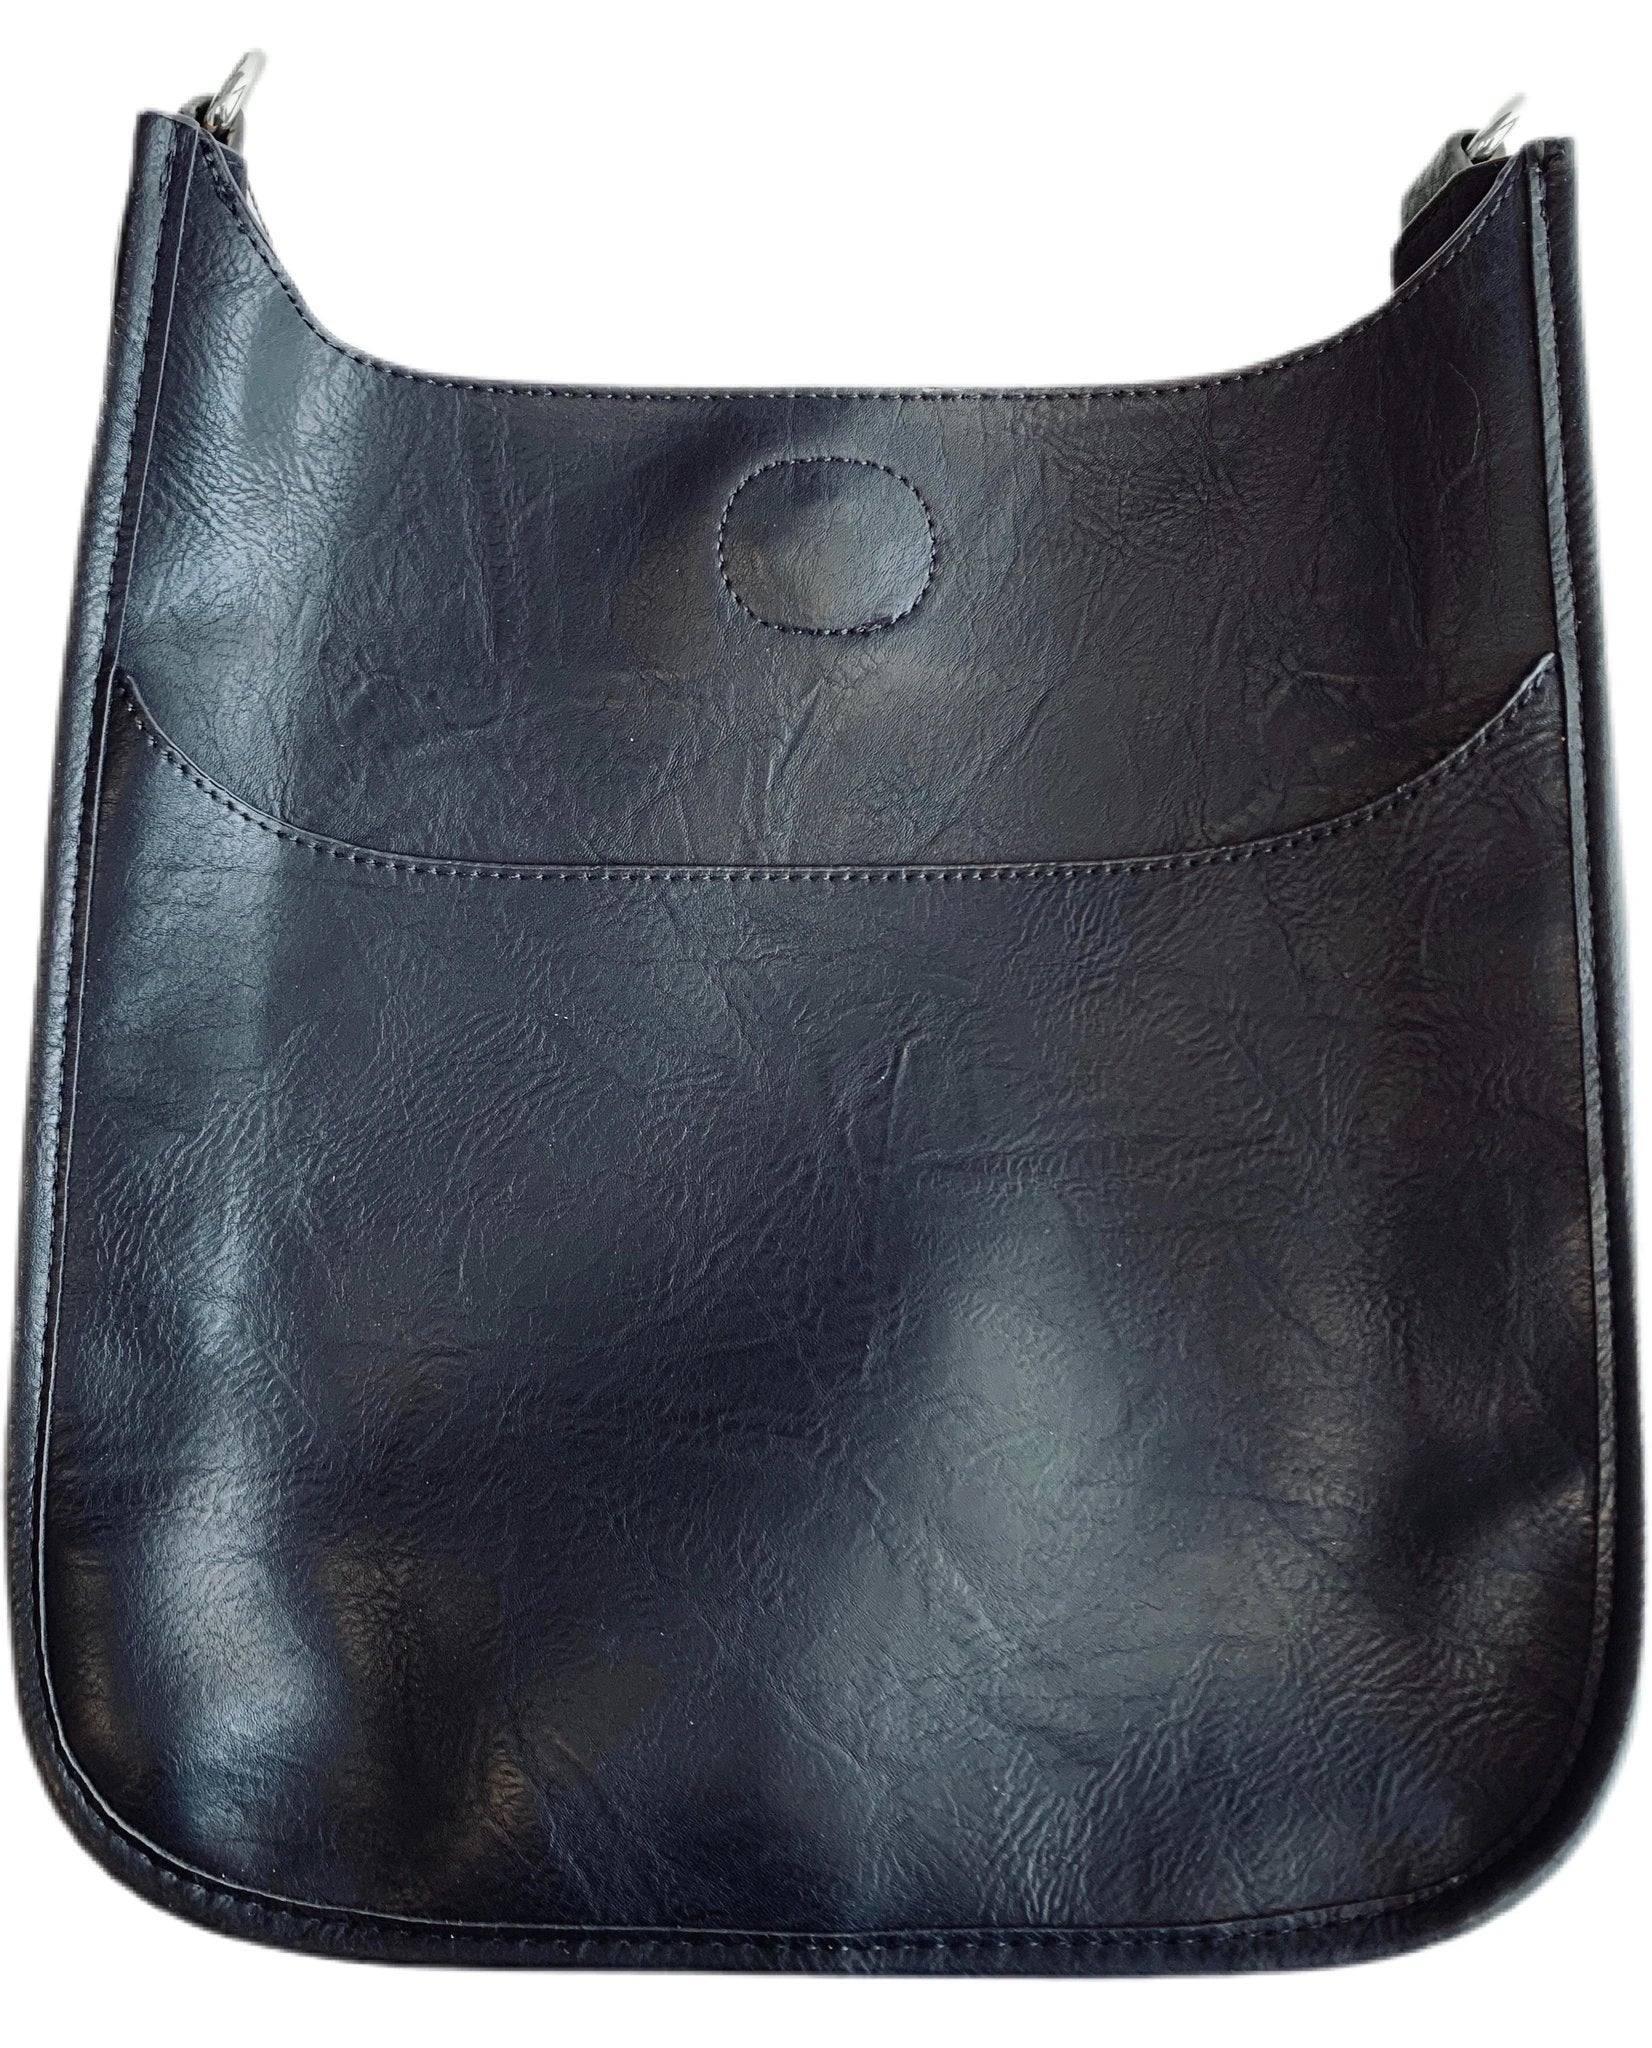 Classic Vegan Leather Crossbody Messenger Bag (*STRAP NOT ATTACHED)